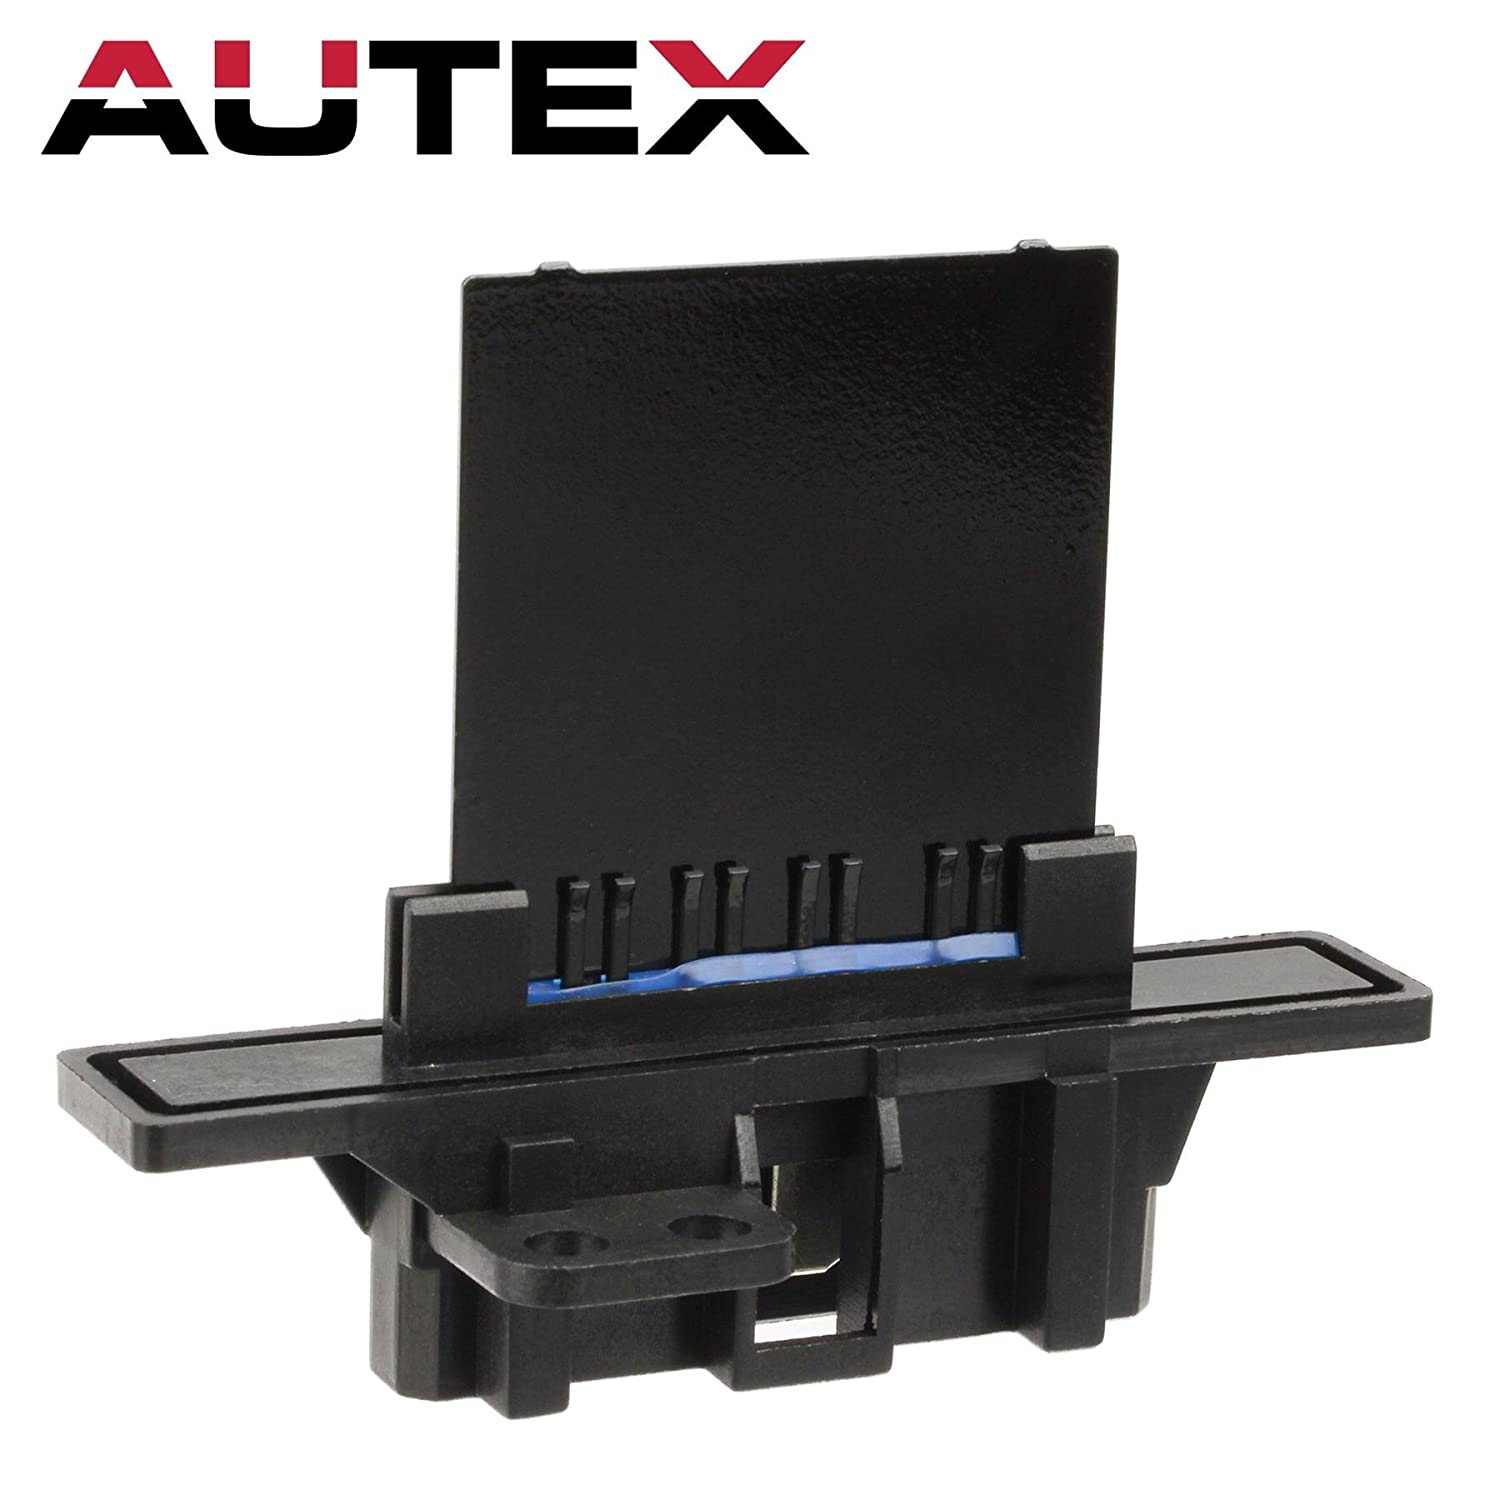 AUTEX HVAC Blower Motor Resistor Module 271506Z500 RU369 4P1492 Replacement for 2000 2001 2002 2003 2004 2005 2006 Nissan Sentra